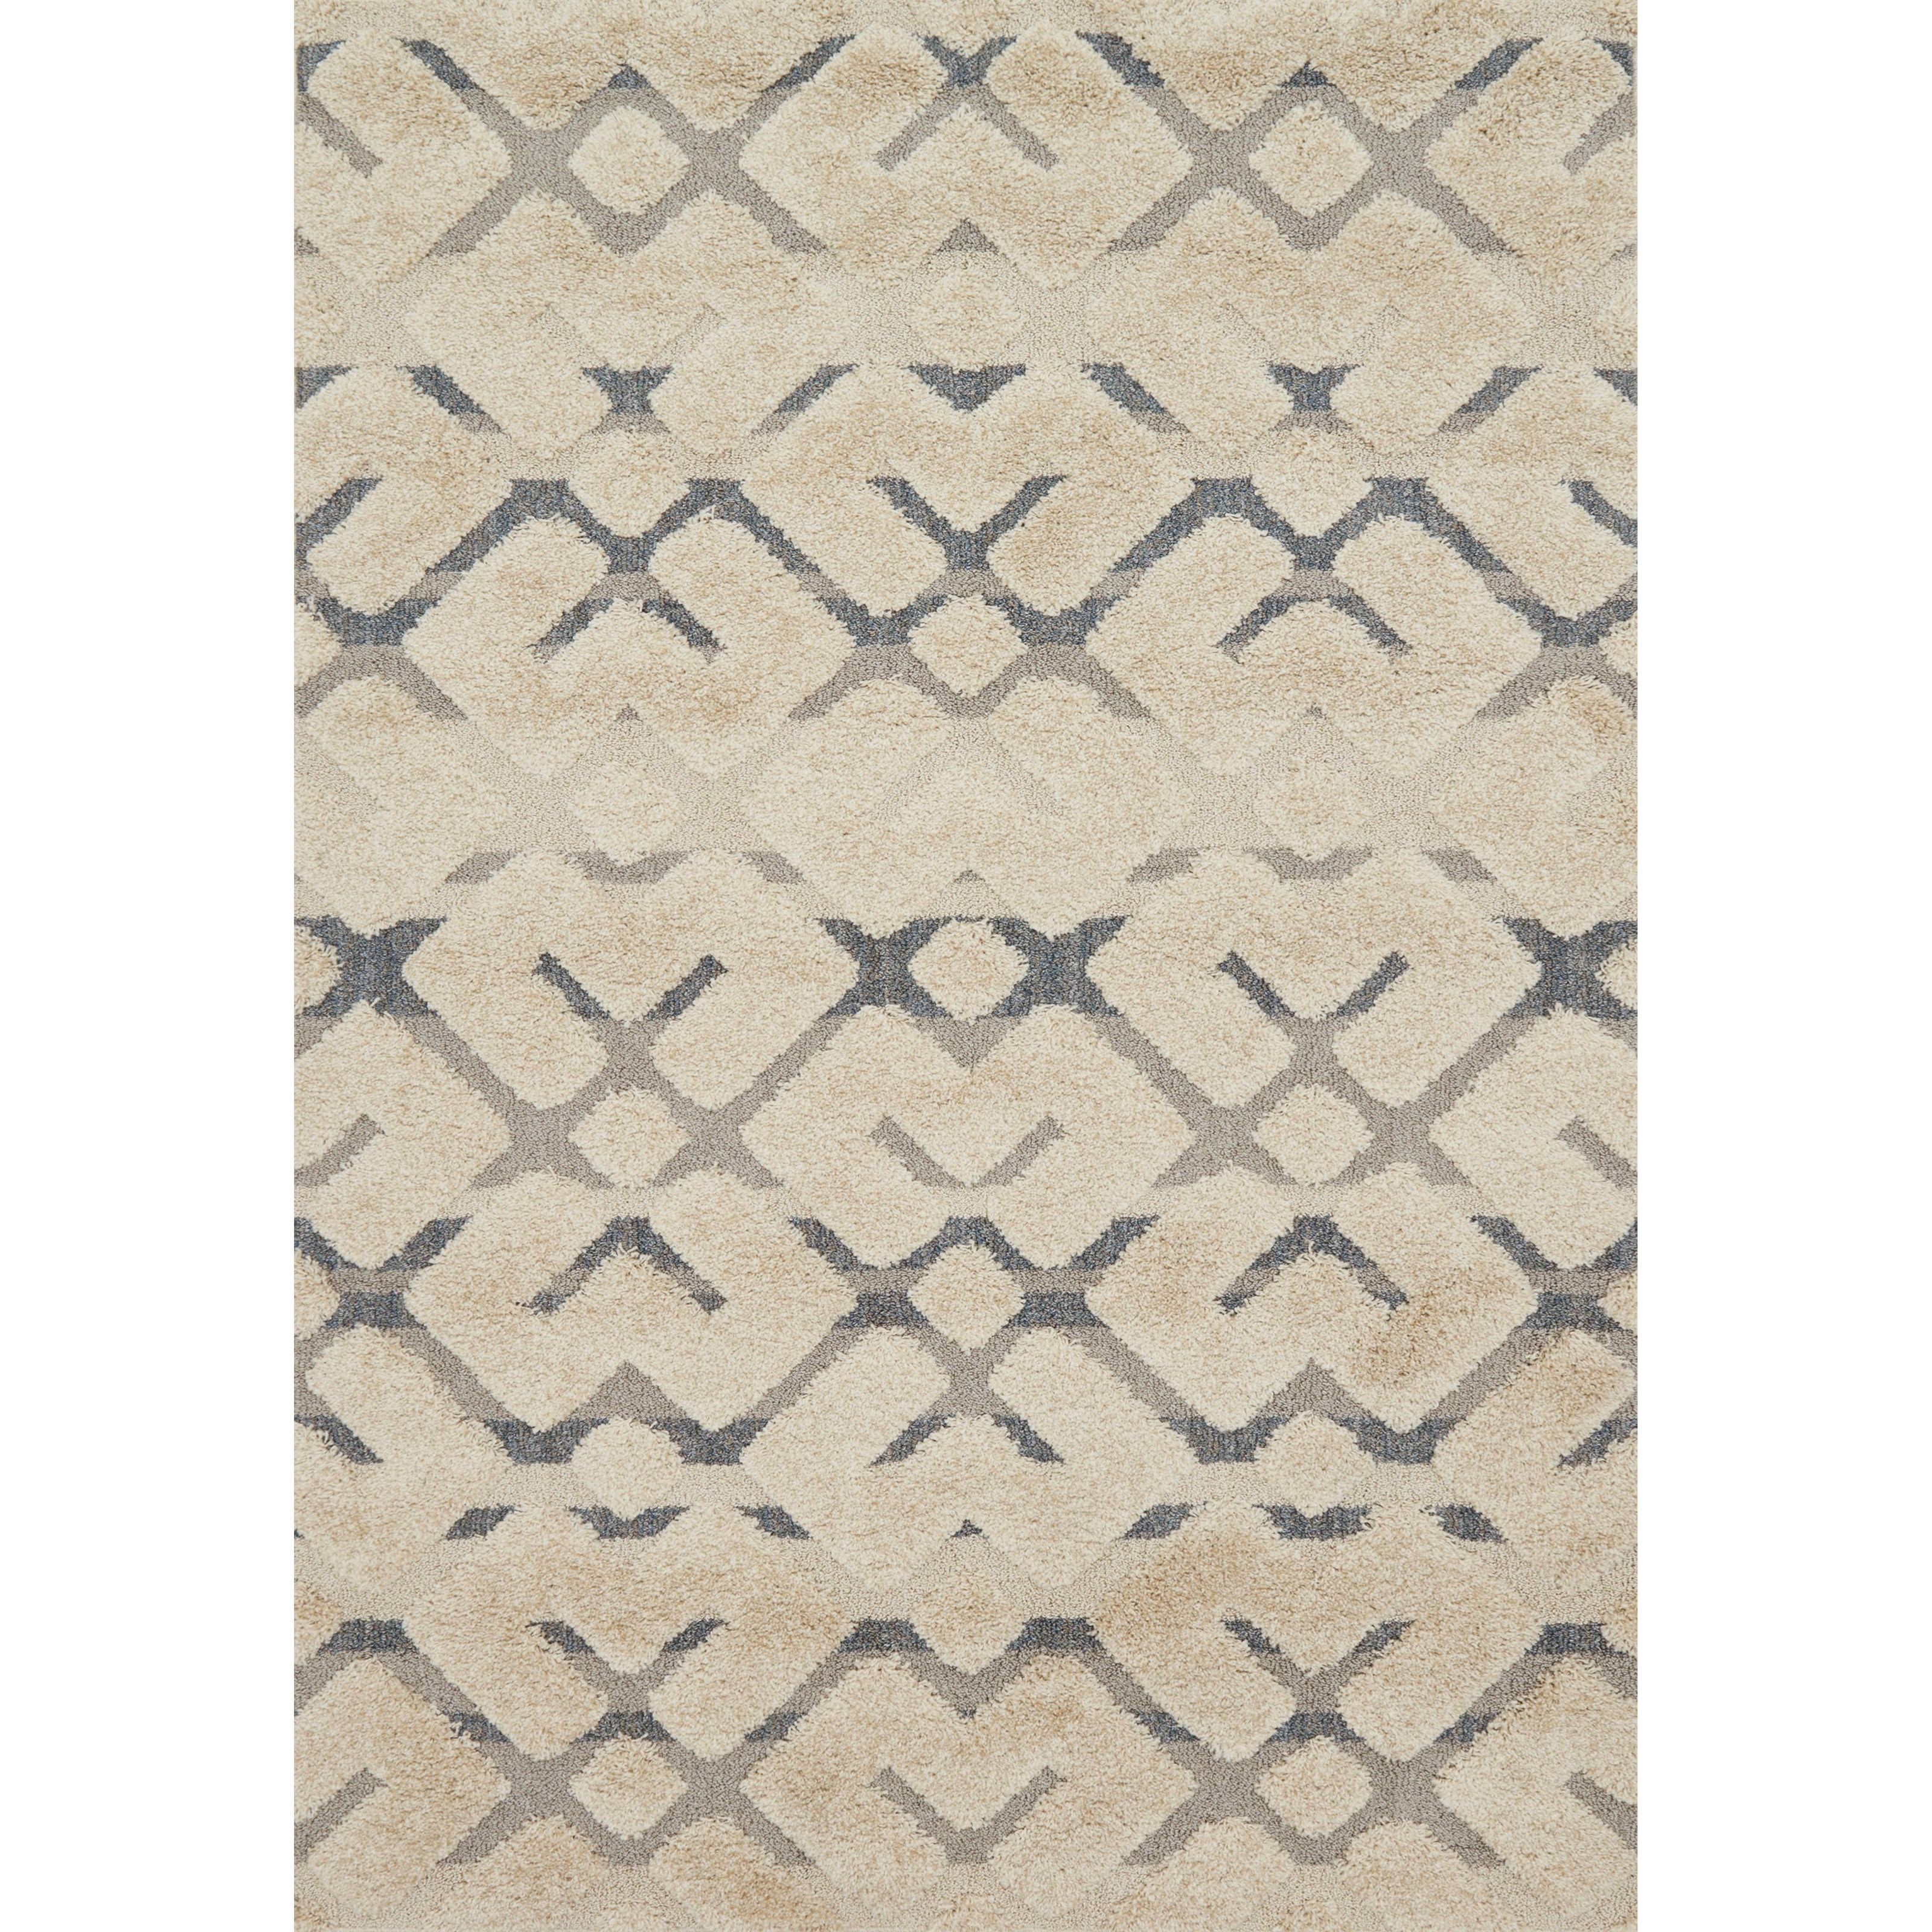 """Enchant 1'6"""" x 1'6""""  Sand / Multi Rug by Loloi Rugs at Virginia Furniture Market"""